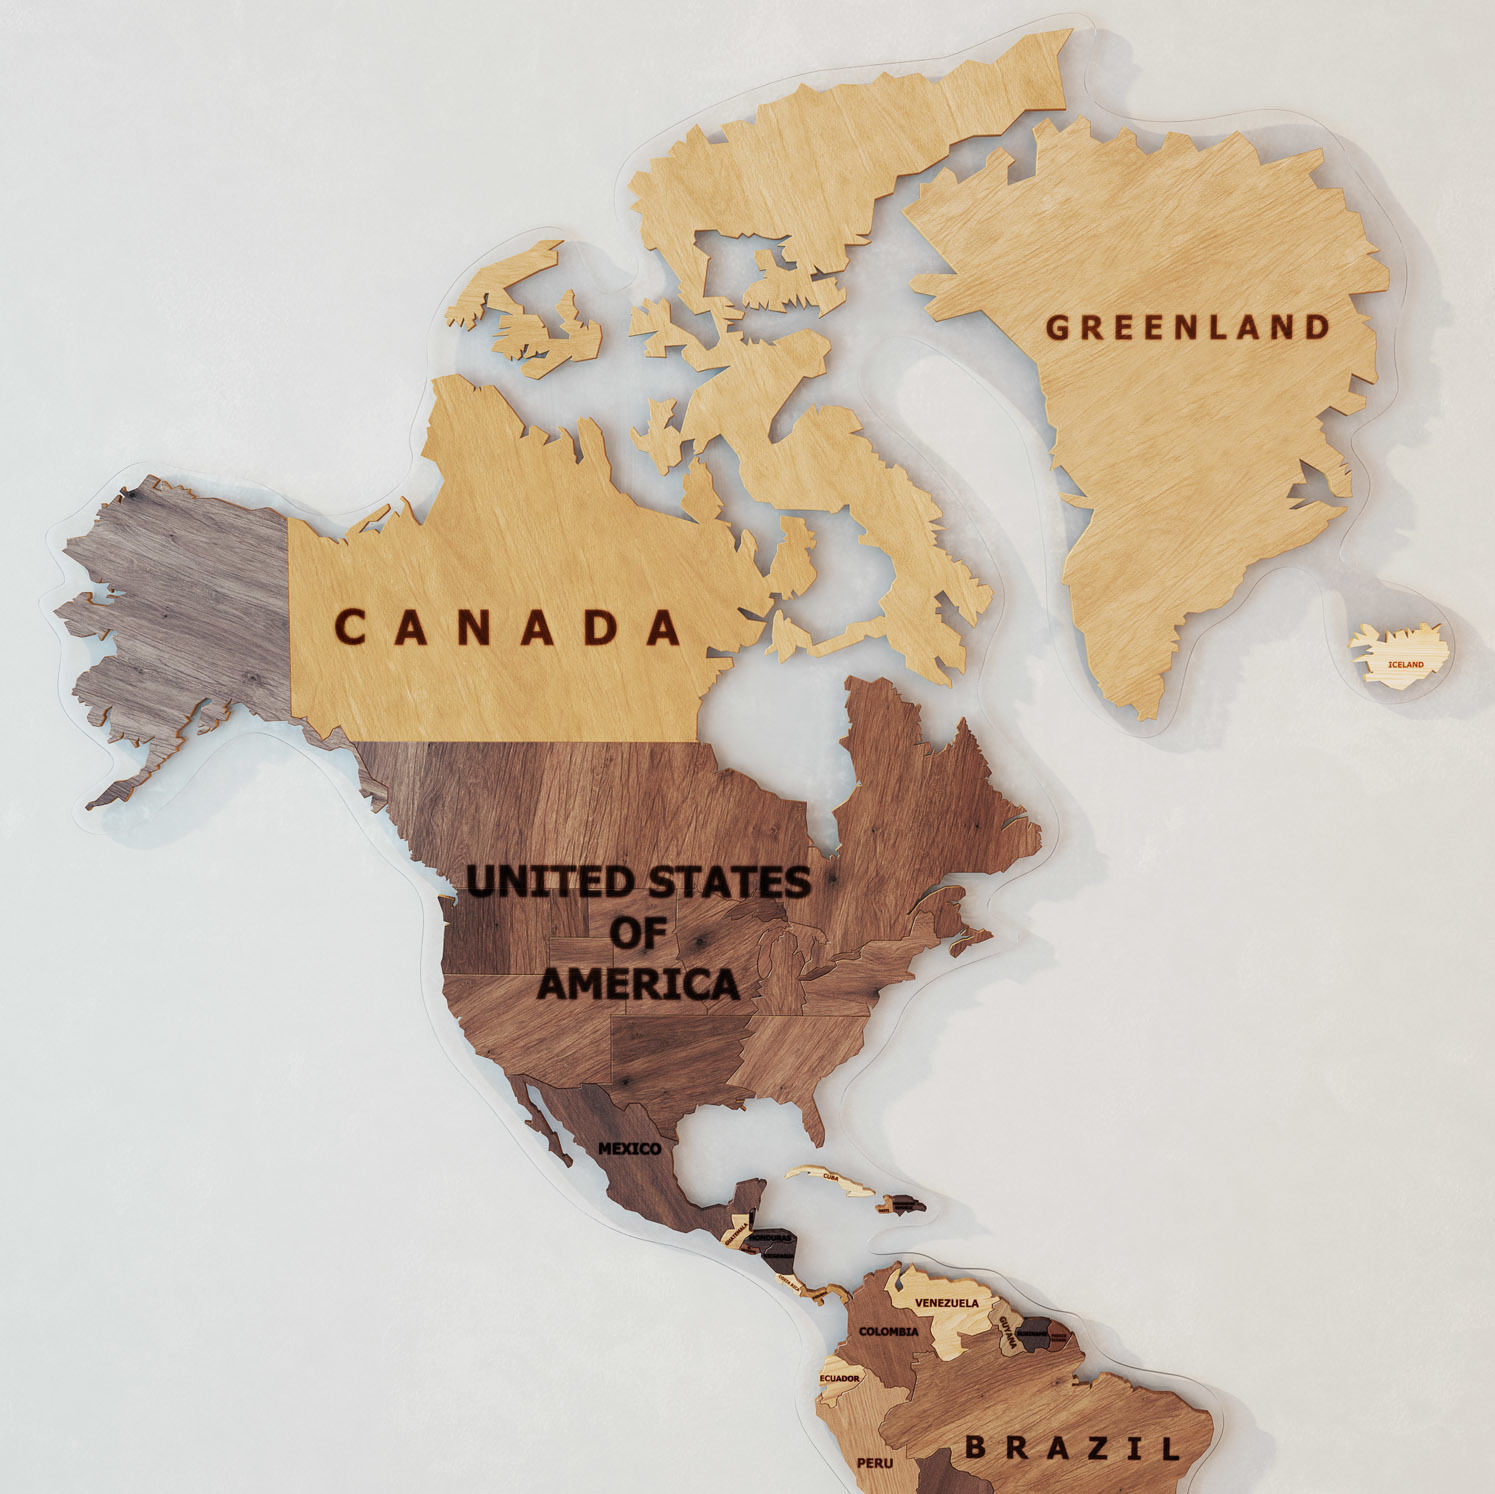 World map made of wood 3d model max fbx world map made of wood 3d model max fbx 2 gumiabroncs Image collections